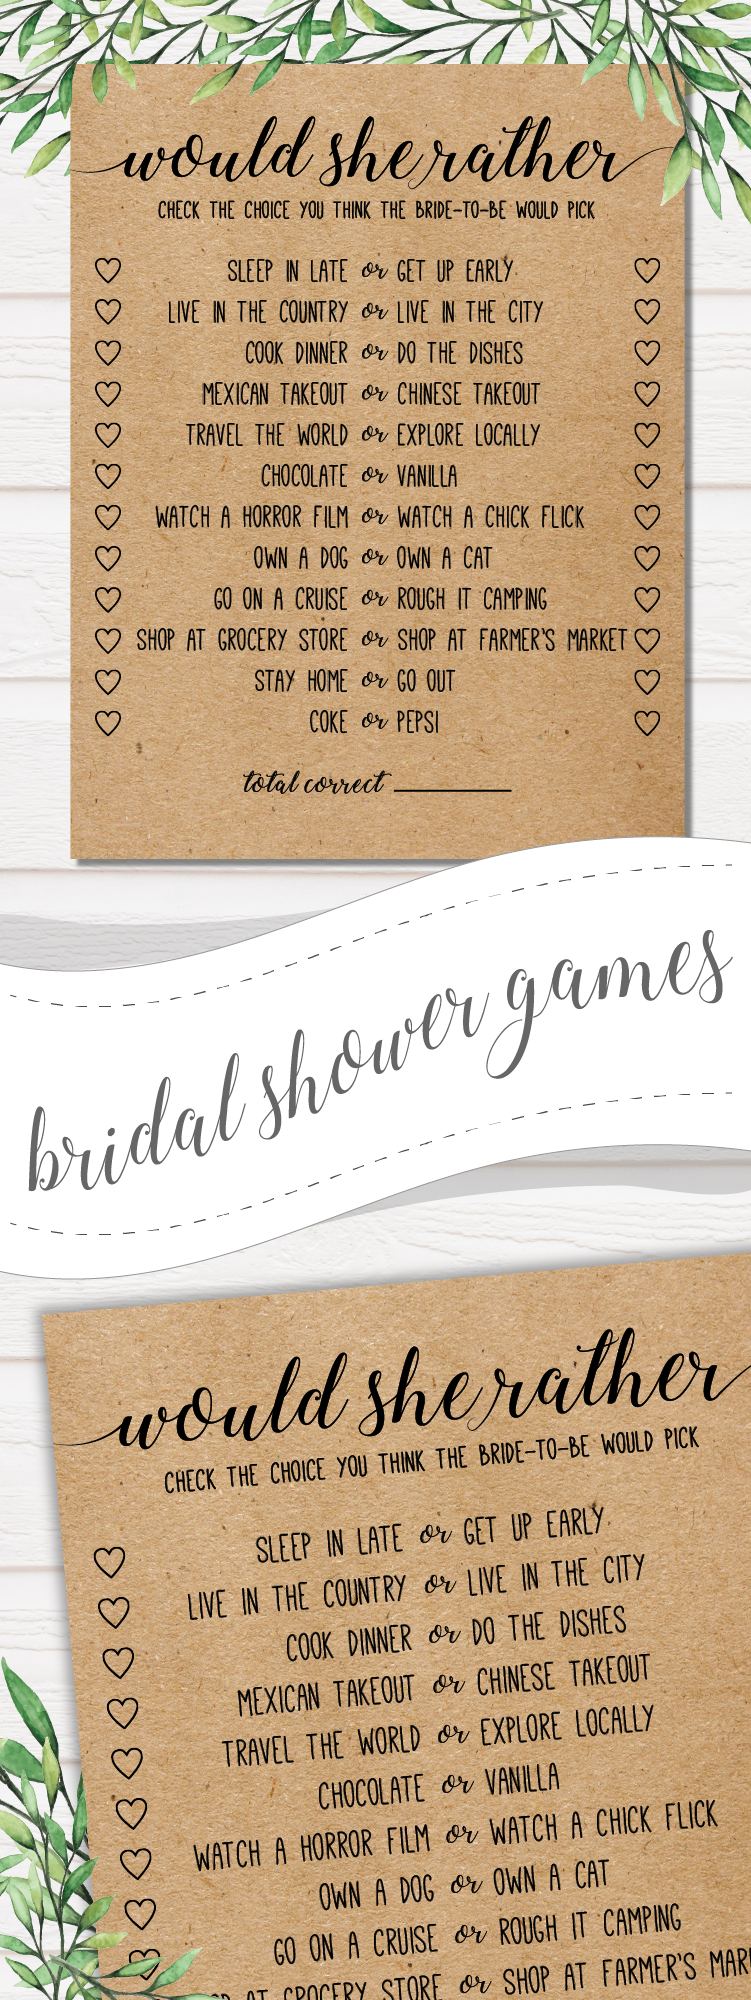 Would She Rather . Would She Rather Bridal Shower Game . Bridal Shower Games,Virtual Bridal Shower